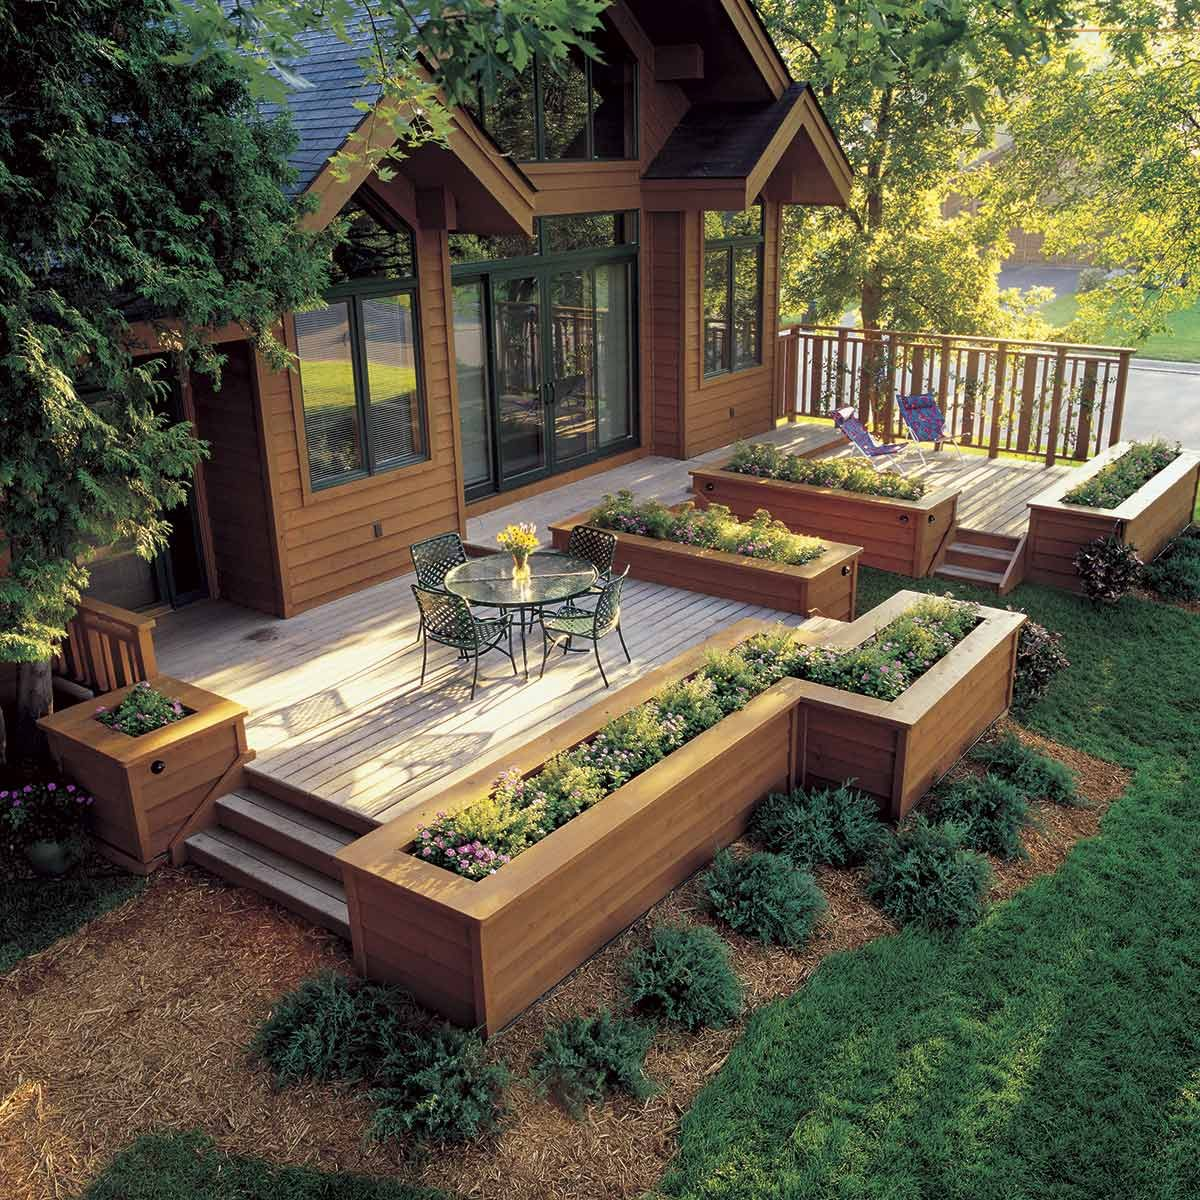 GIVE YOUR DECK A FACELIFT!